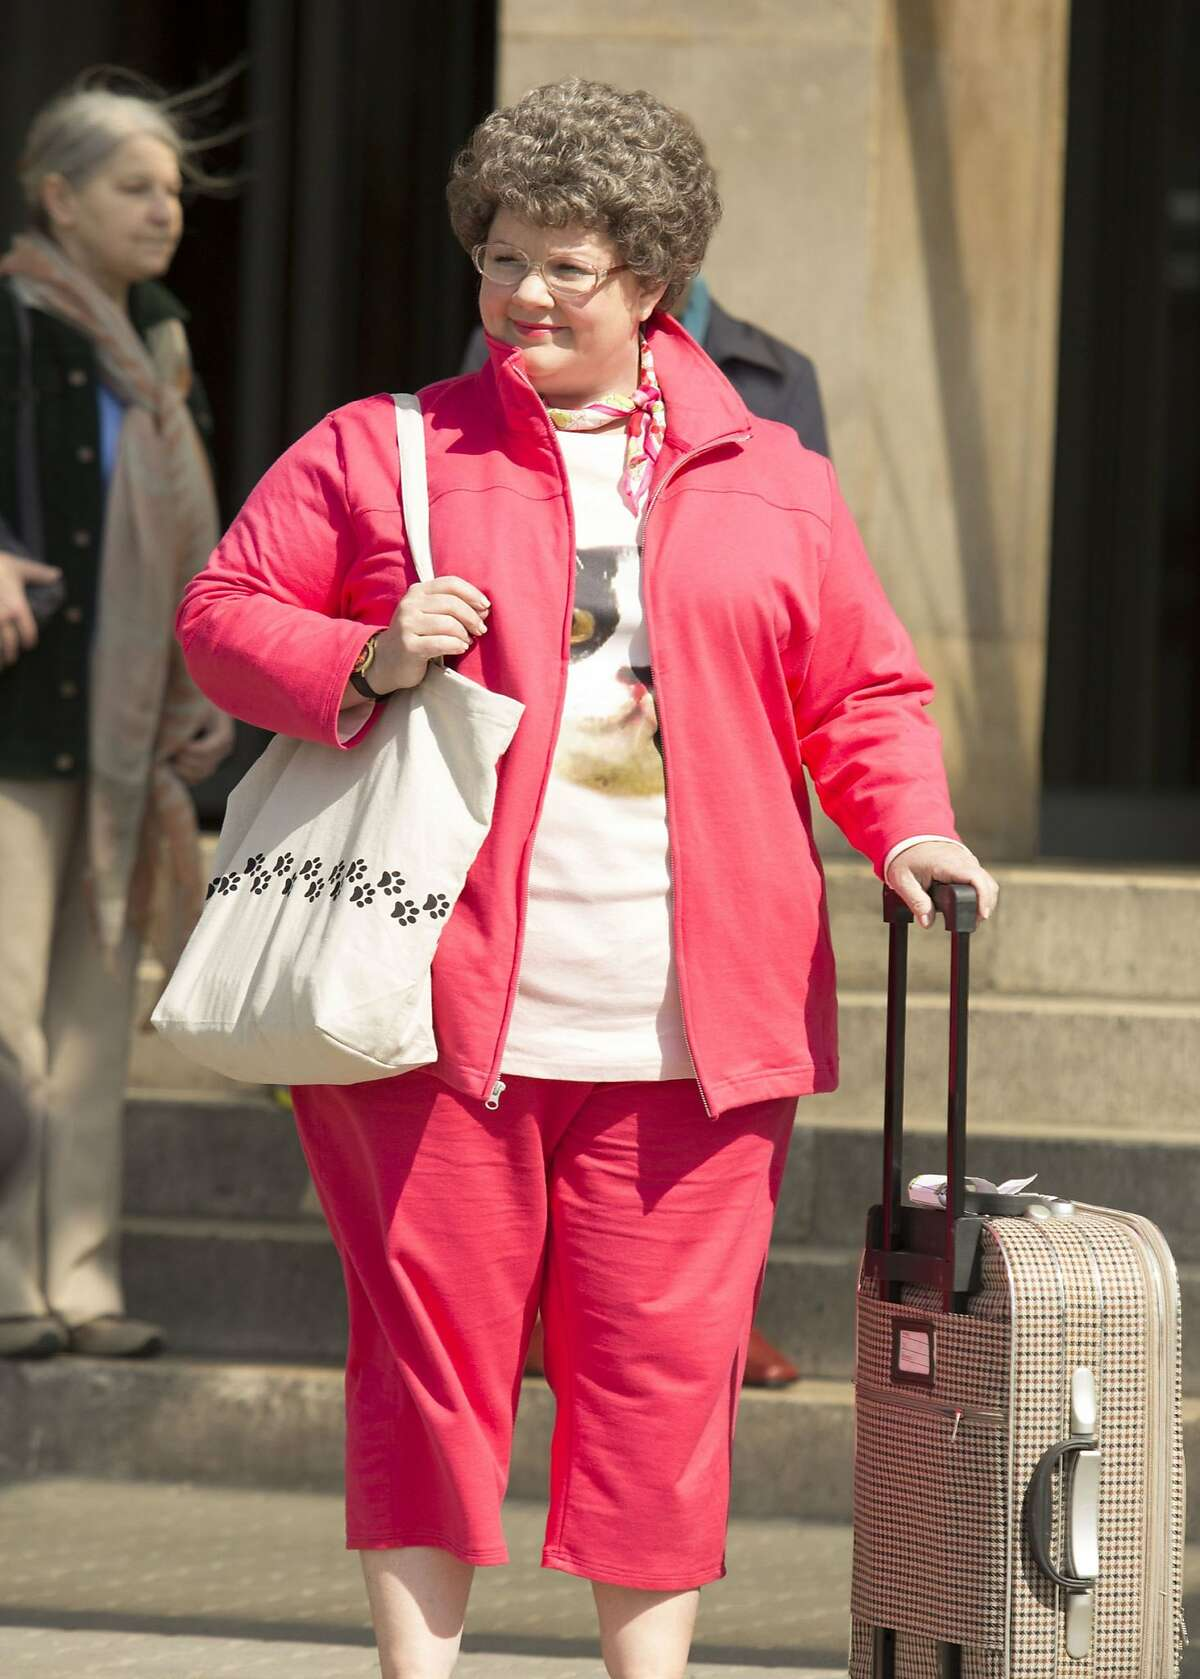 """Melissa McCarthy goes undercover in """"Spy."""" DF-02227_R - Melissa McCarthy is Susan Cooper, a CIA analyst, who volunteers to go deep undercover to infiltrate the world of a deadly arms dealer, and prevent a global disaster."""